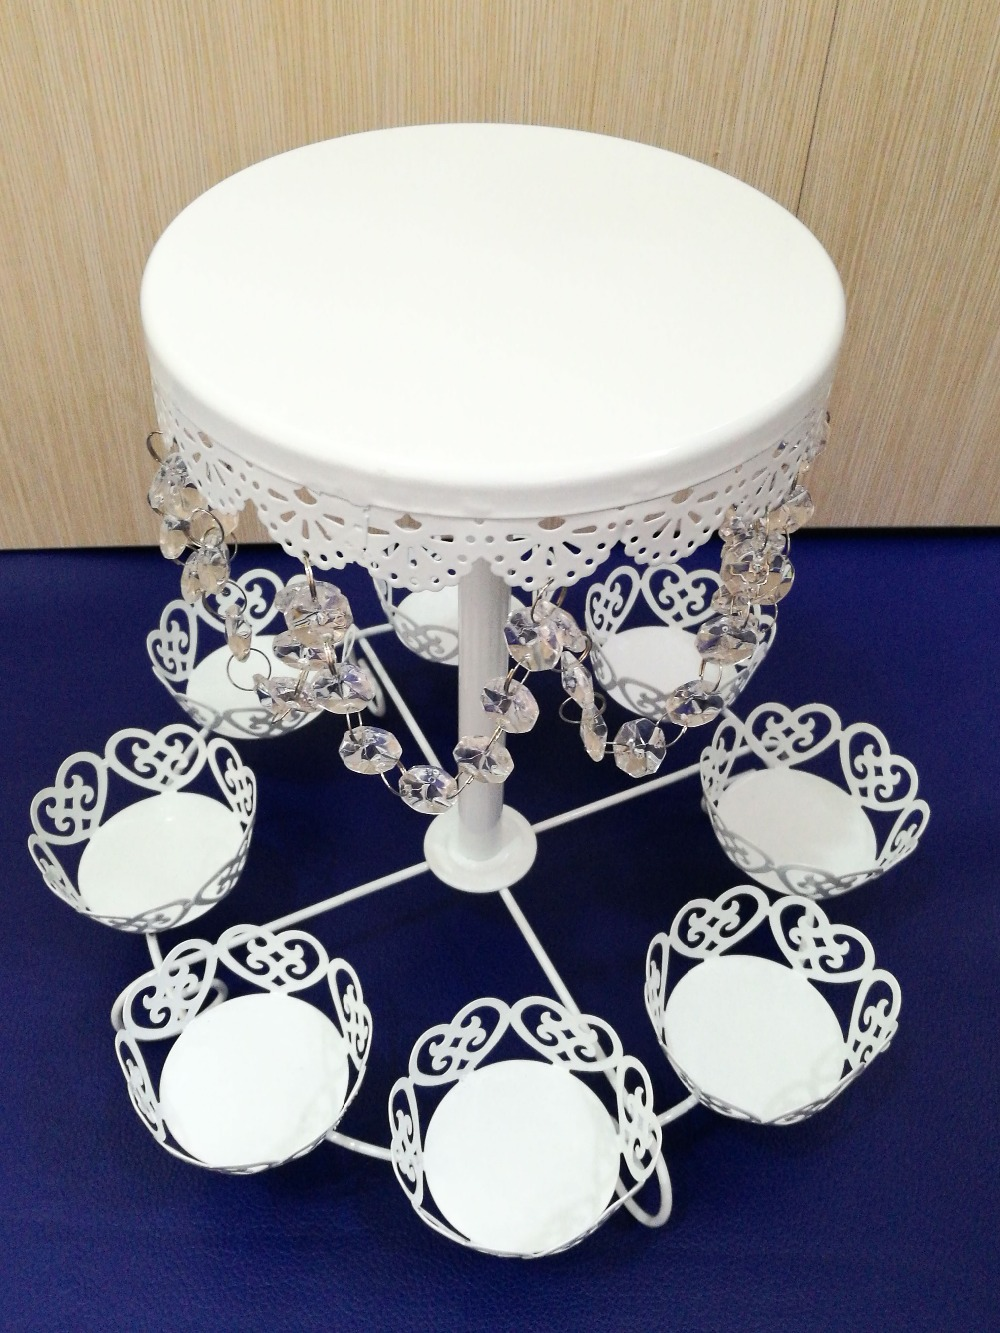 hot sale lace crystal wedding cupcake stand cake tray decoration cake Muffin cupcake dessert display holder